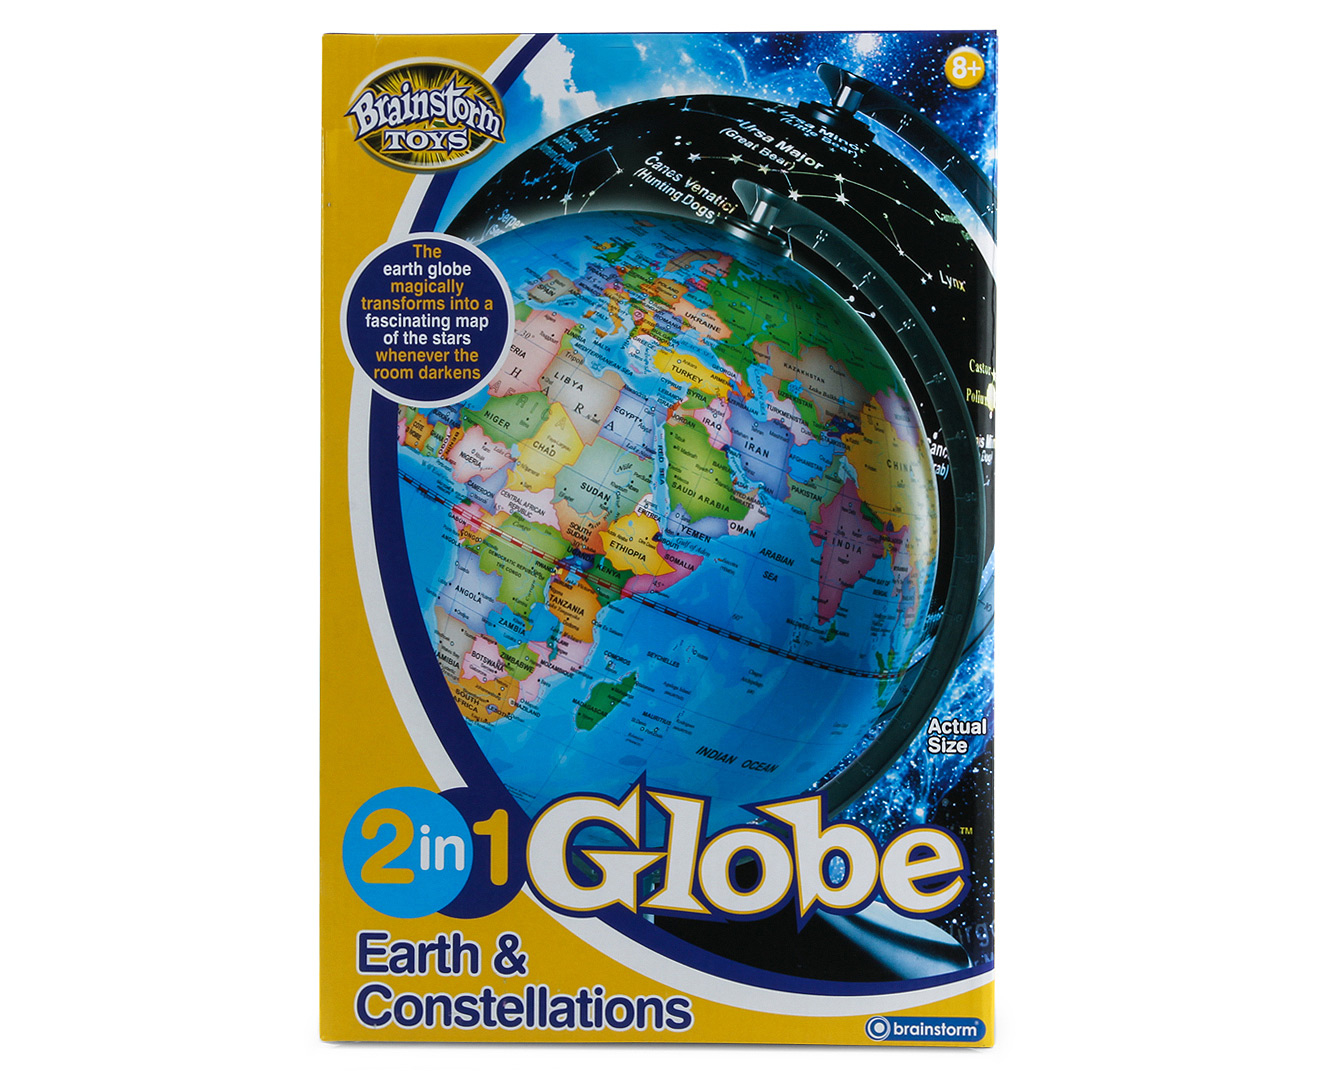 6415c246c904 Brainstorm Toys 2-in-1 Earth & Constellations Globe